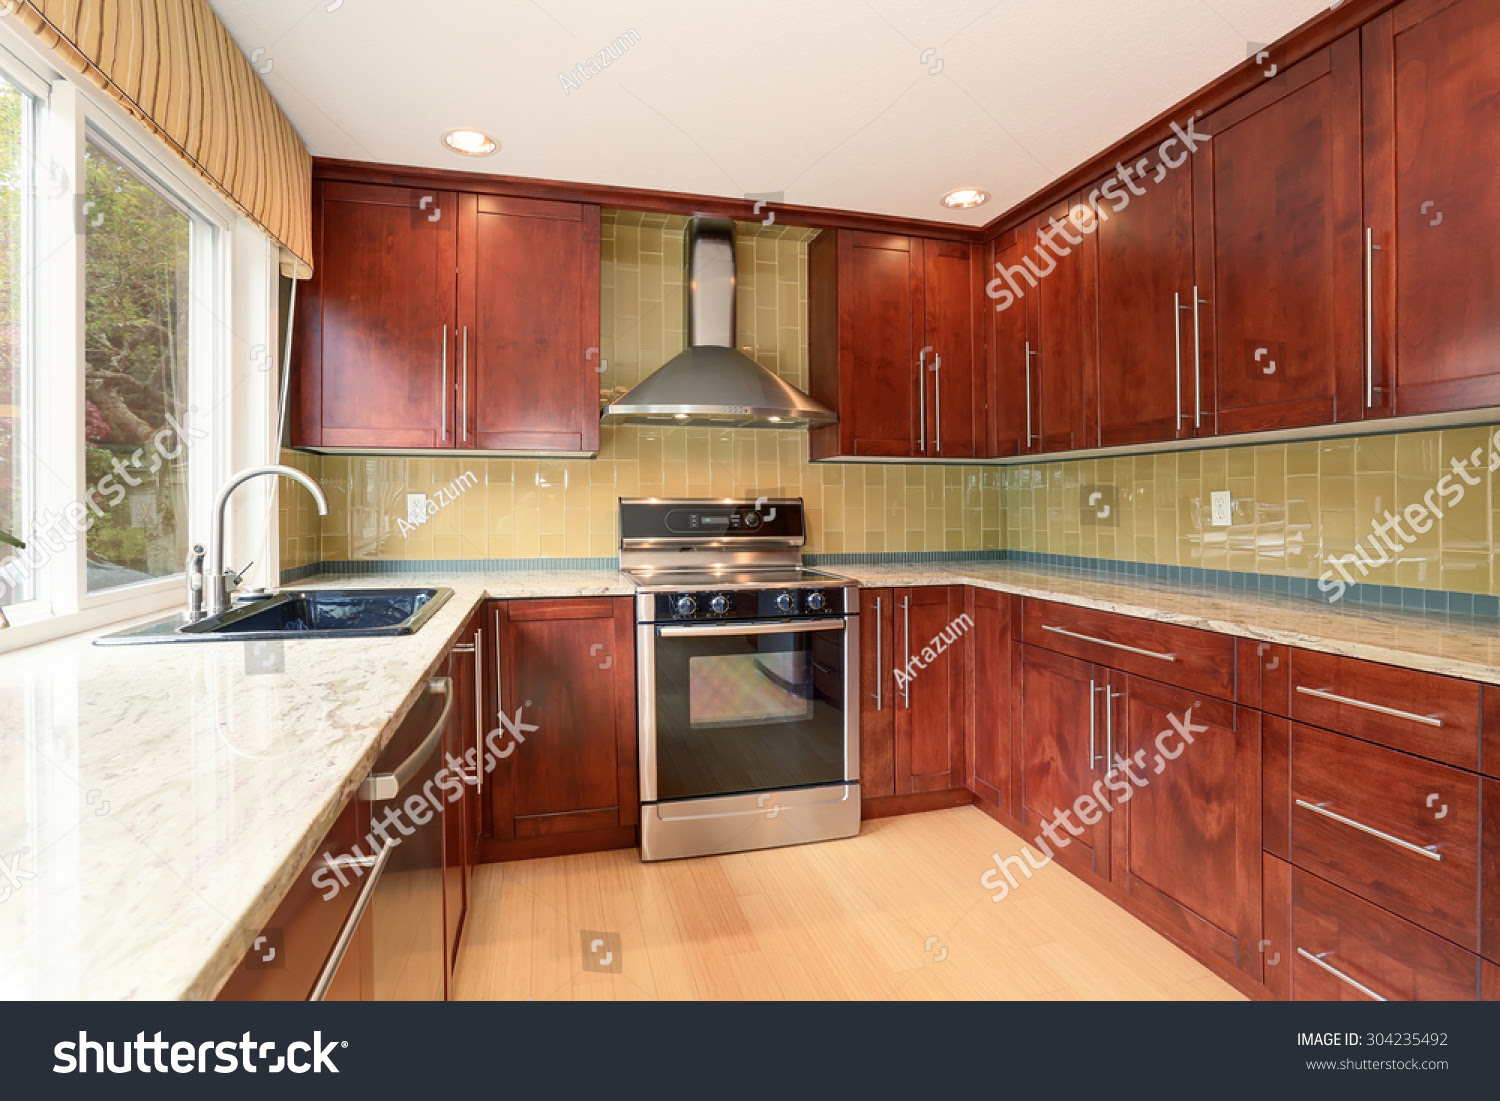 Clean Style Kitchen Stained Wood Cabinets Stock Photo ...